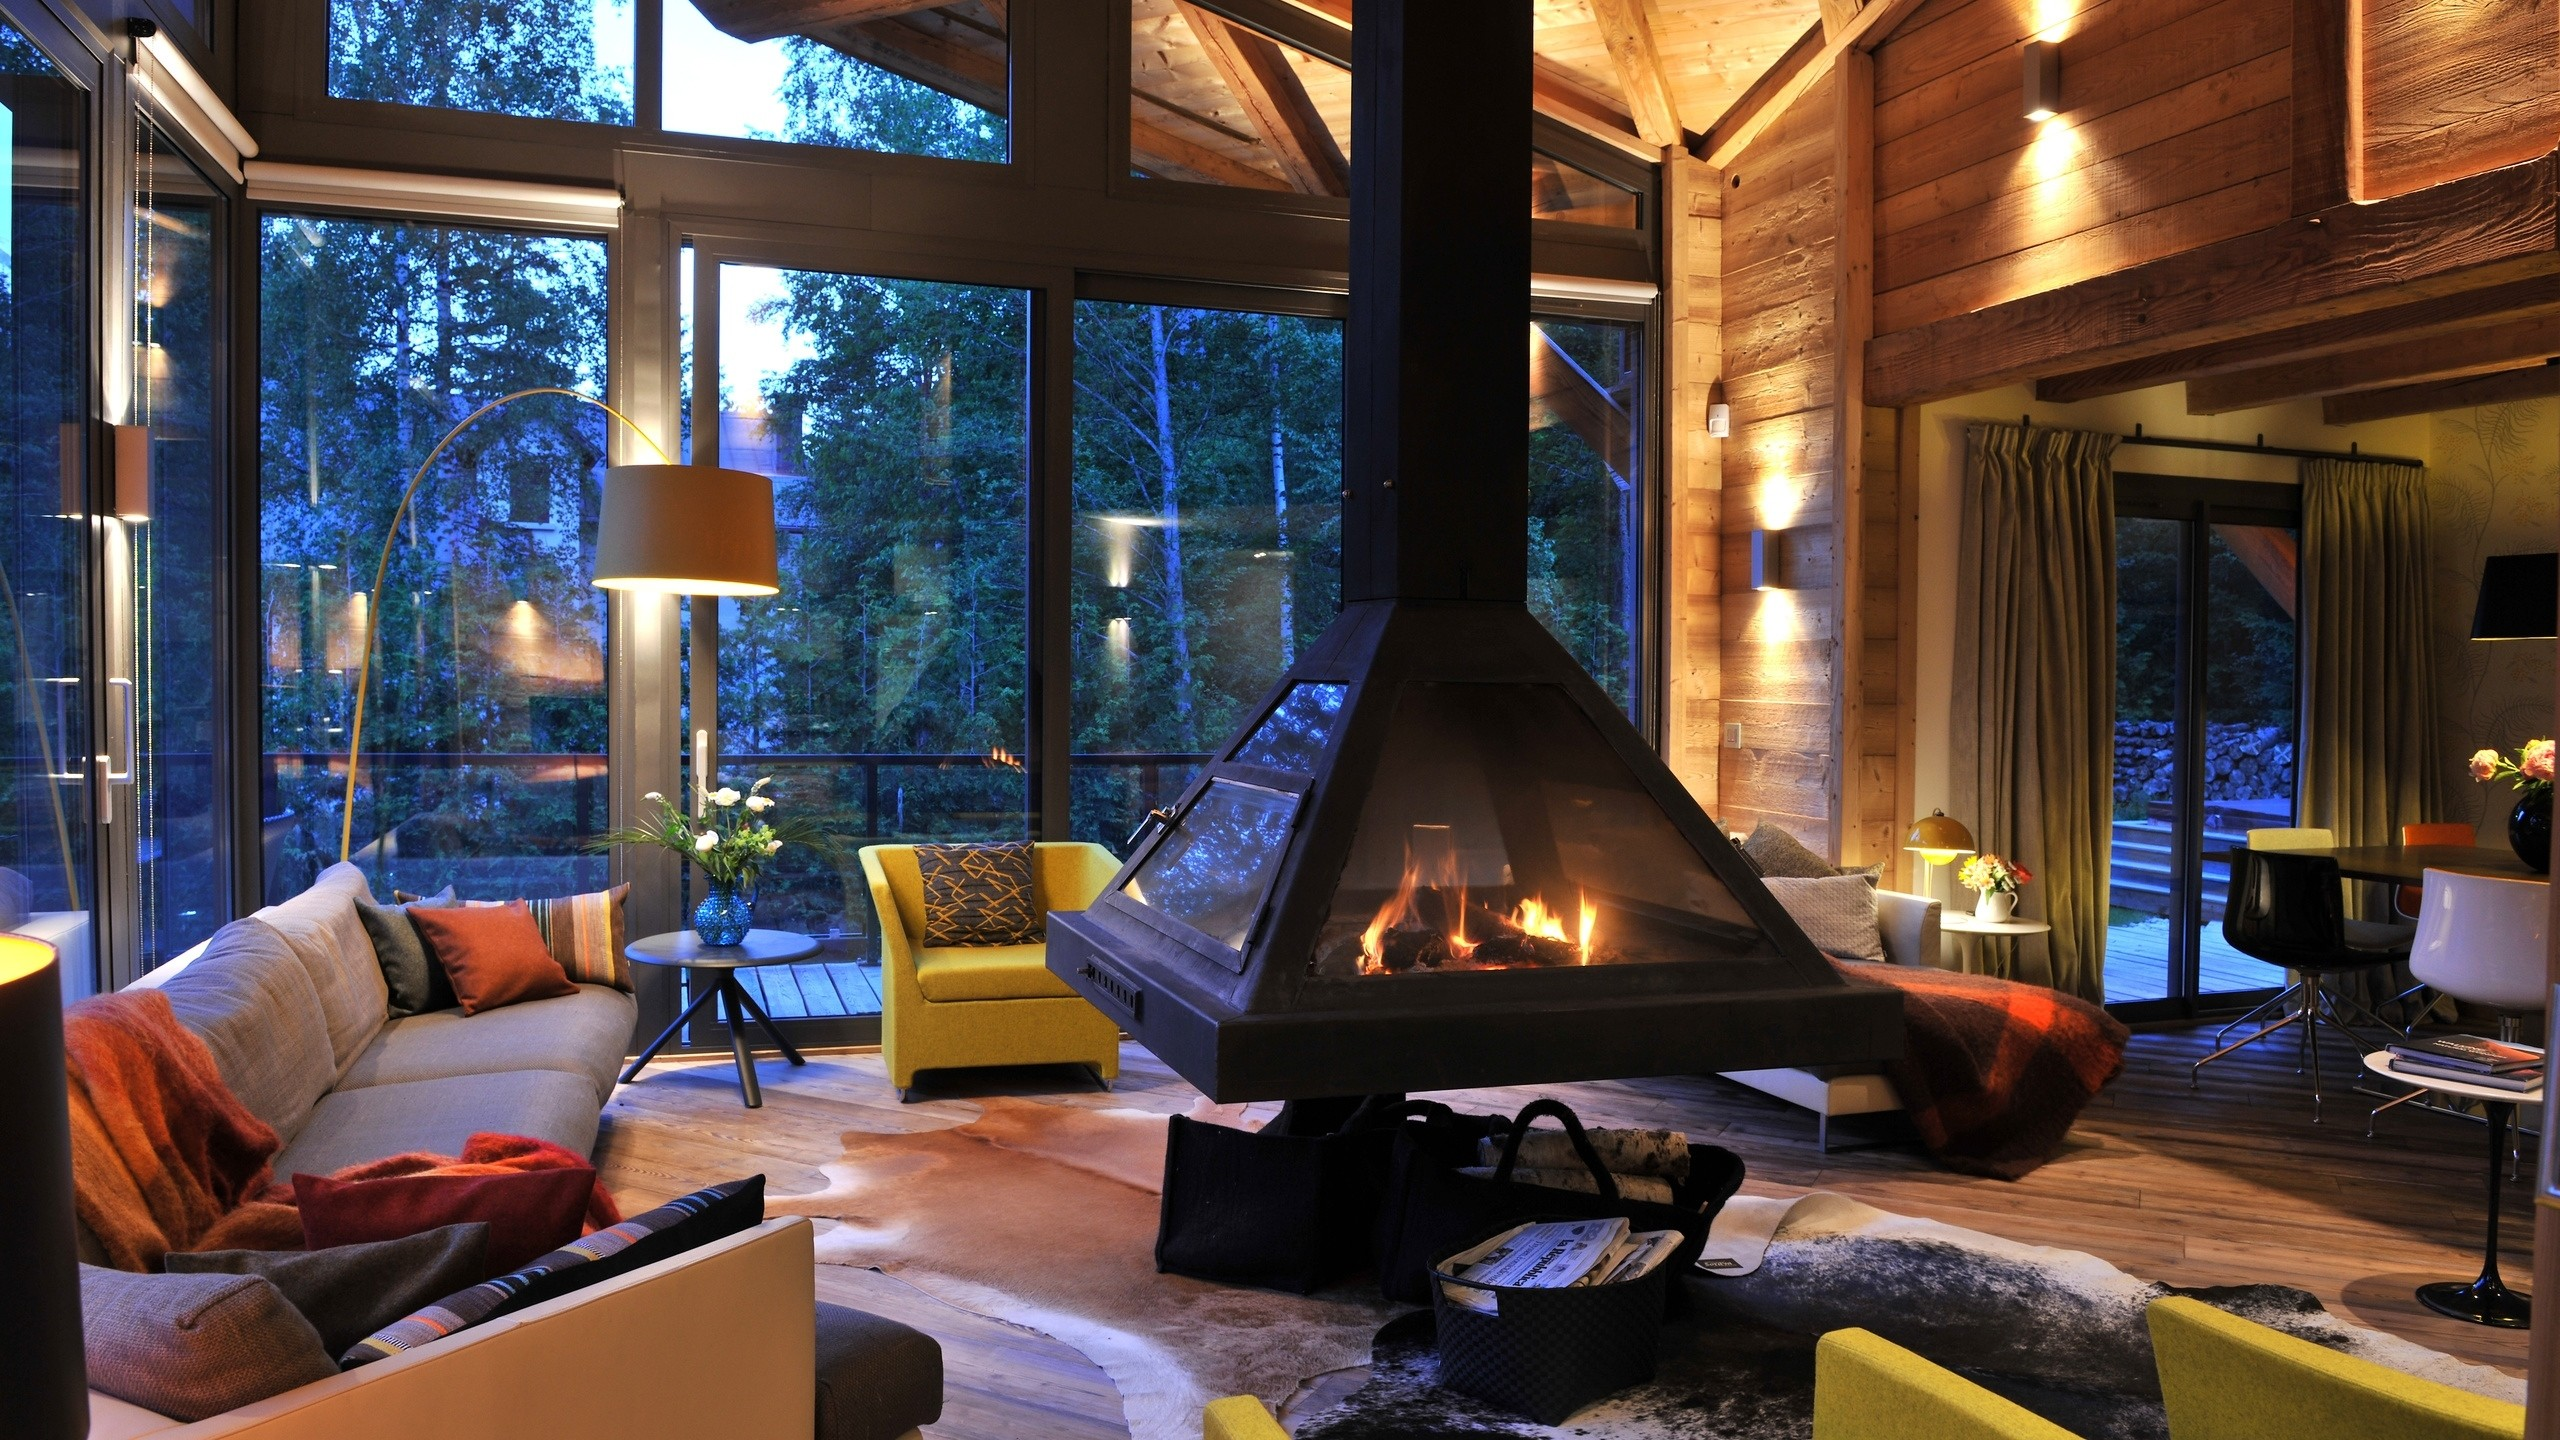 Res: 2560x1440, 25 Fireplace wallpaper Decorating Ideas